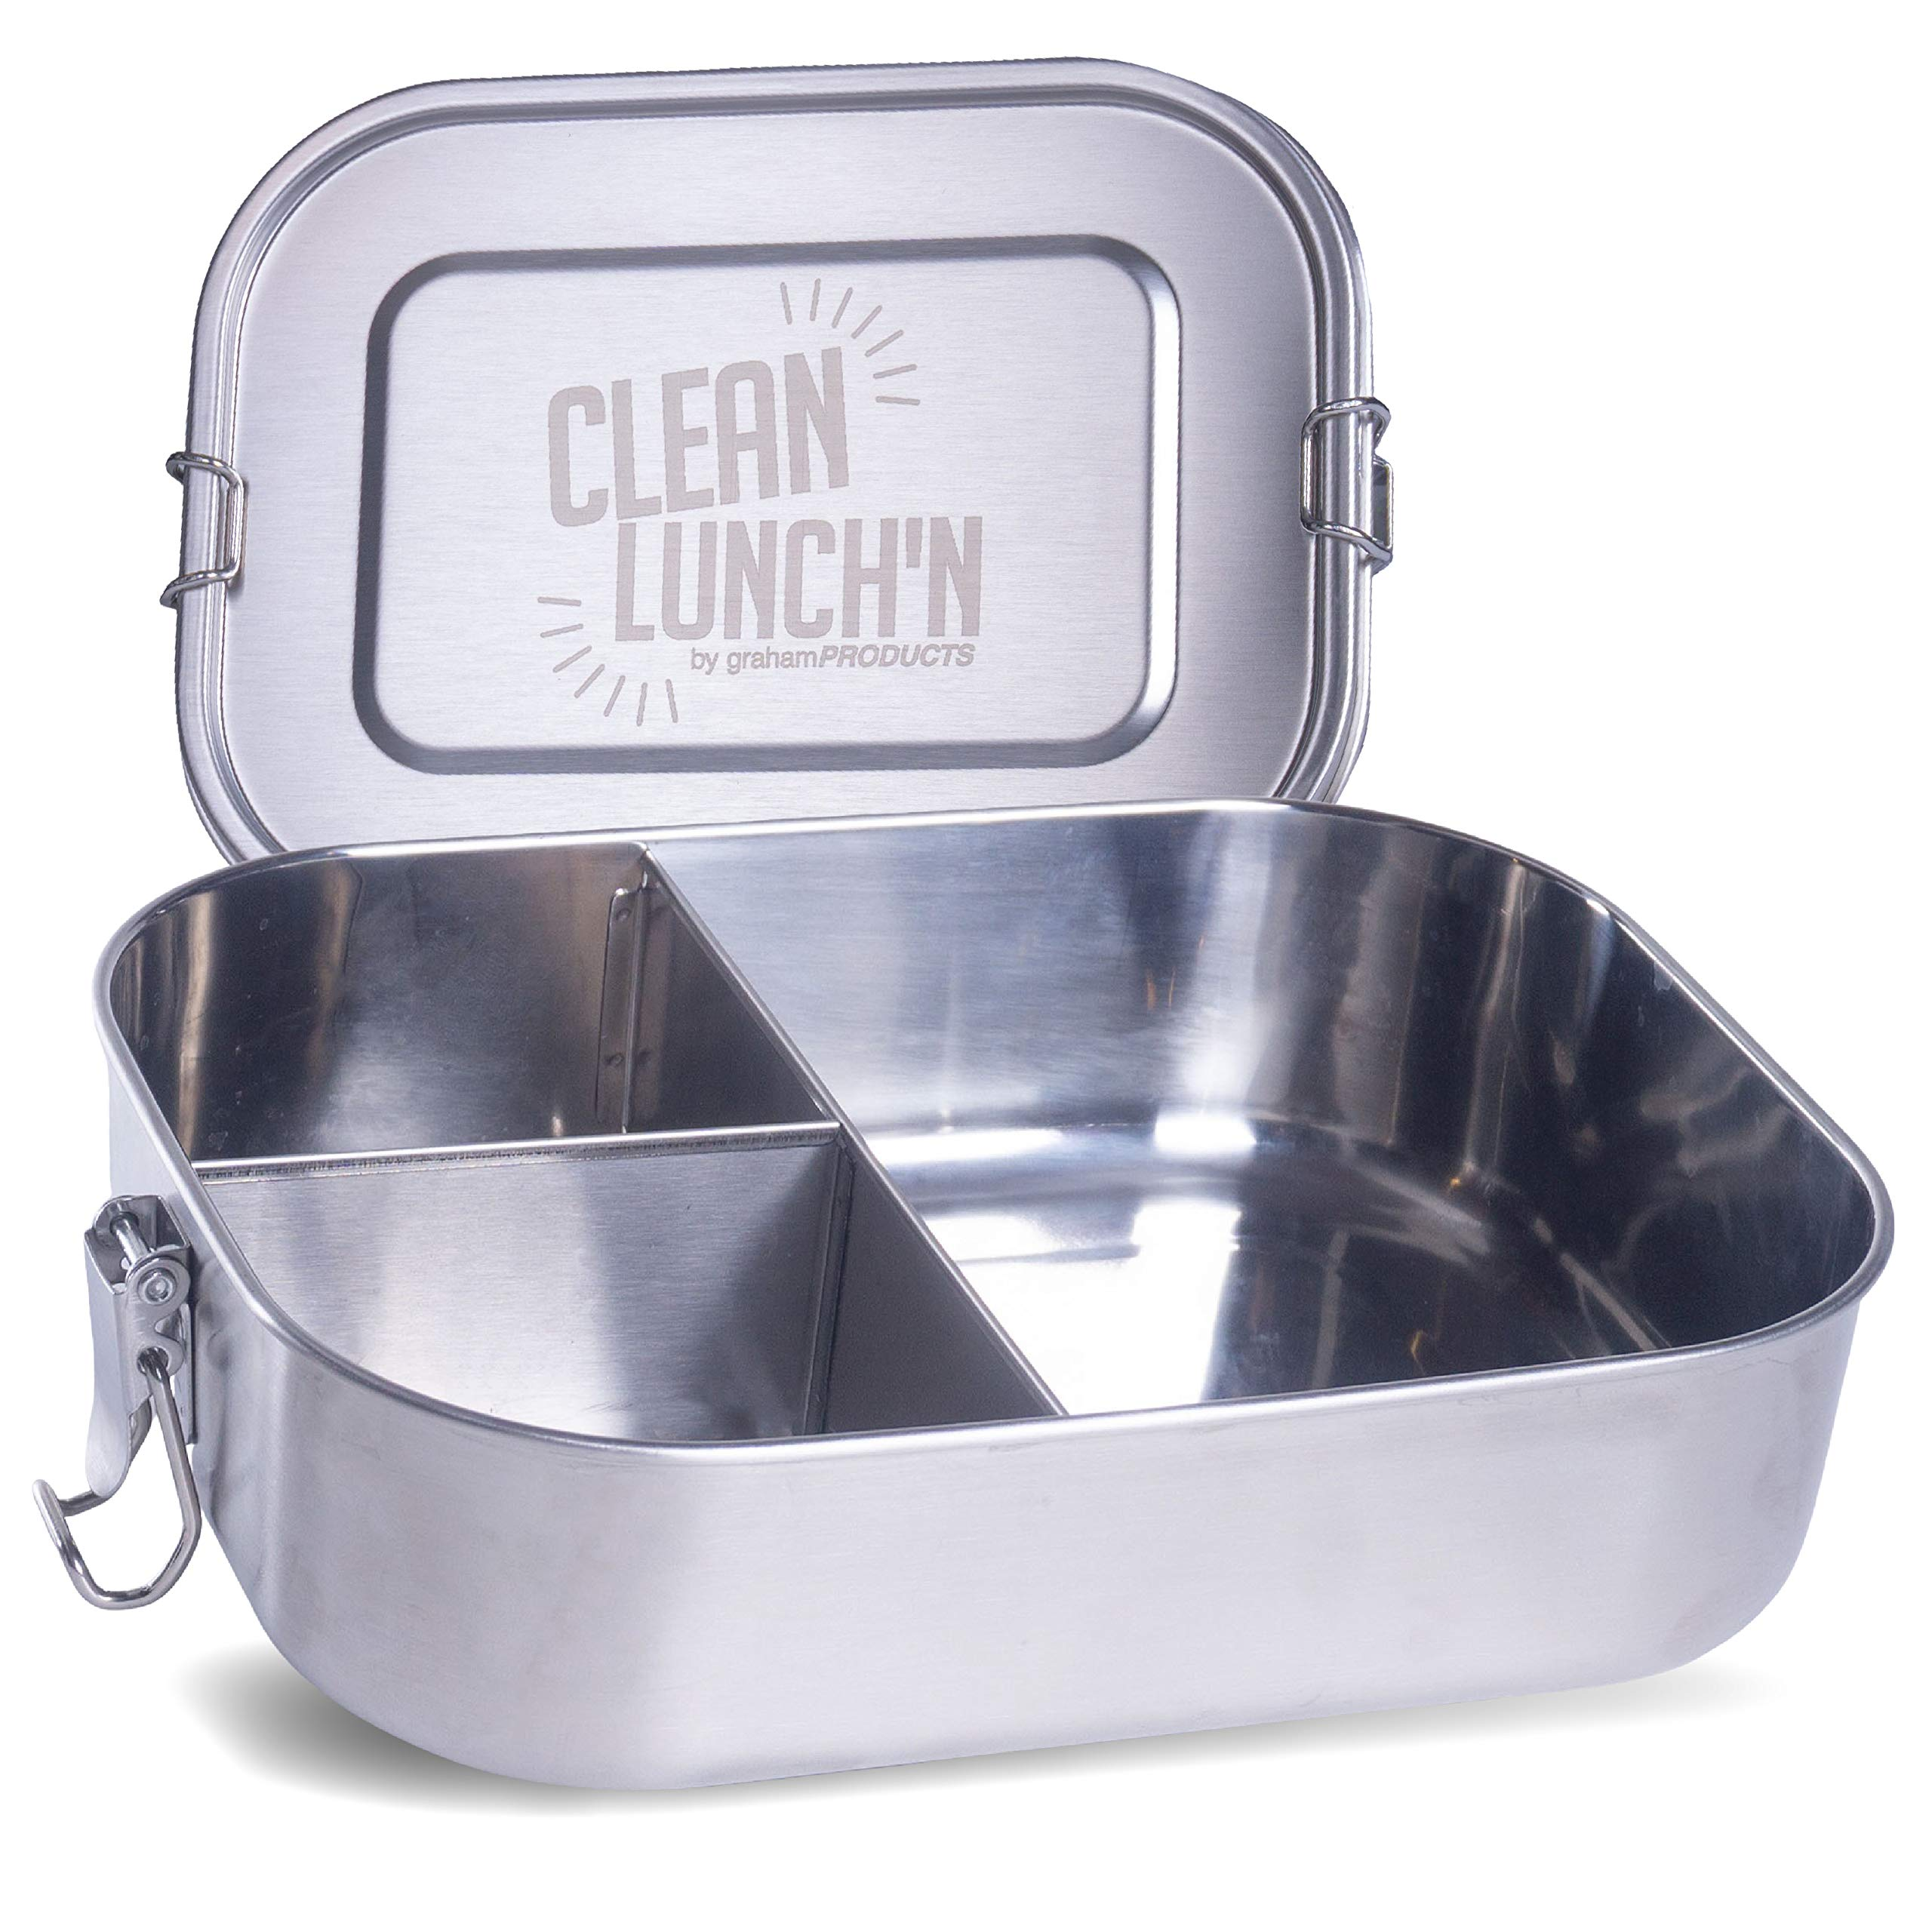 Clean Lunch'N Stainless Steel Lunch Box - Large Metal Bento Container with 3 Divided Meal Prep Food Compartments and Leak Proof Lid For Adults or Kids Eco-Friendly Insulated Snack Storage